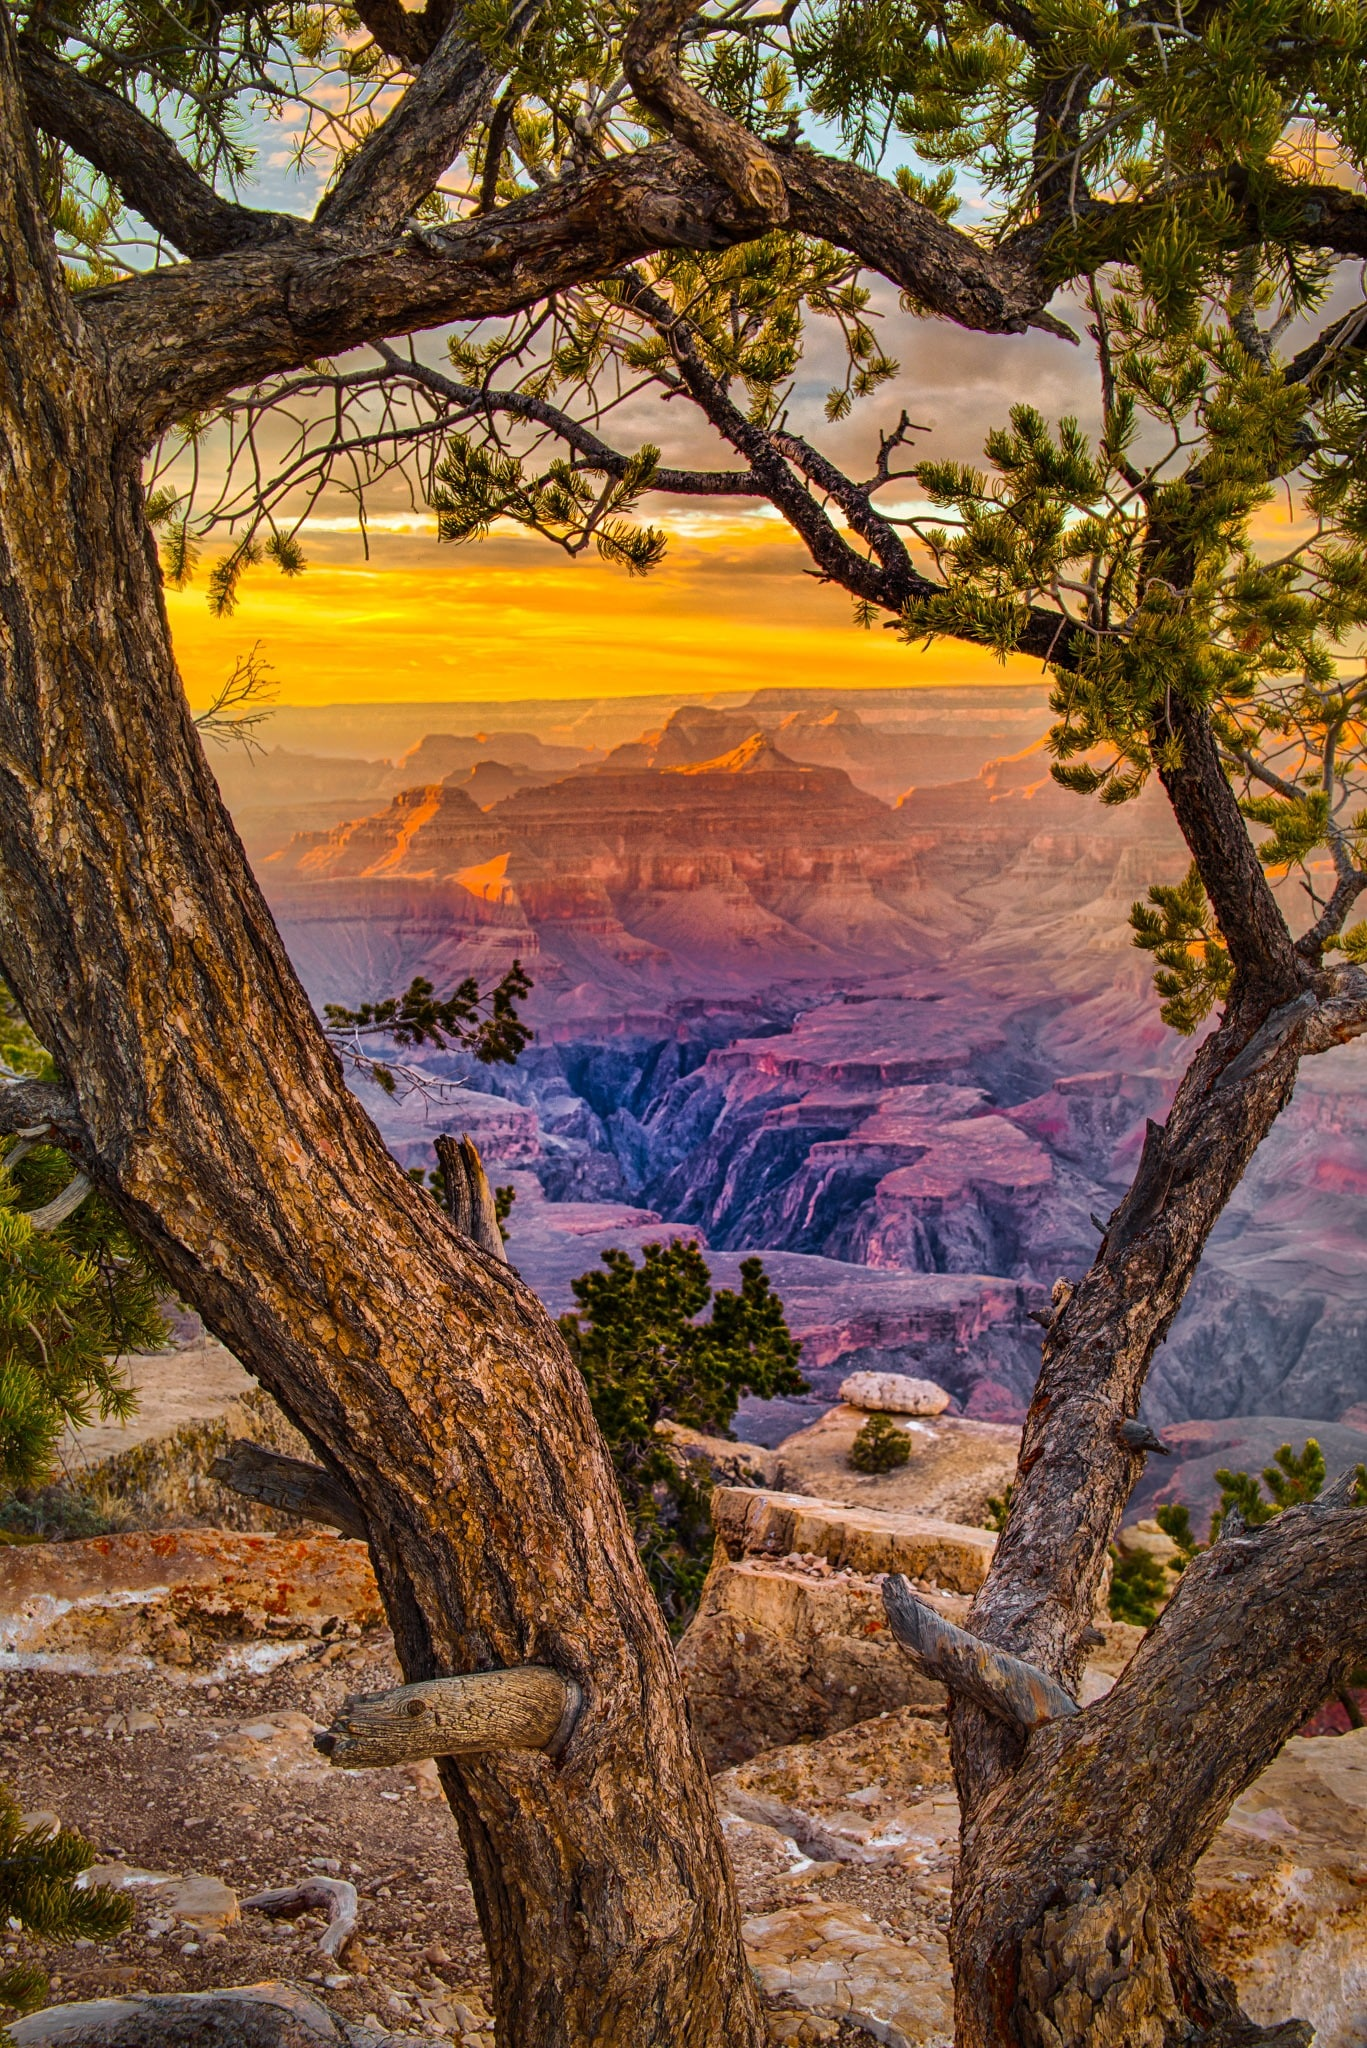 The view from Yaki Point at sunset on the South Rim of the Grand Canyon in Arizona.